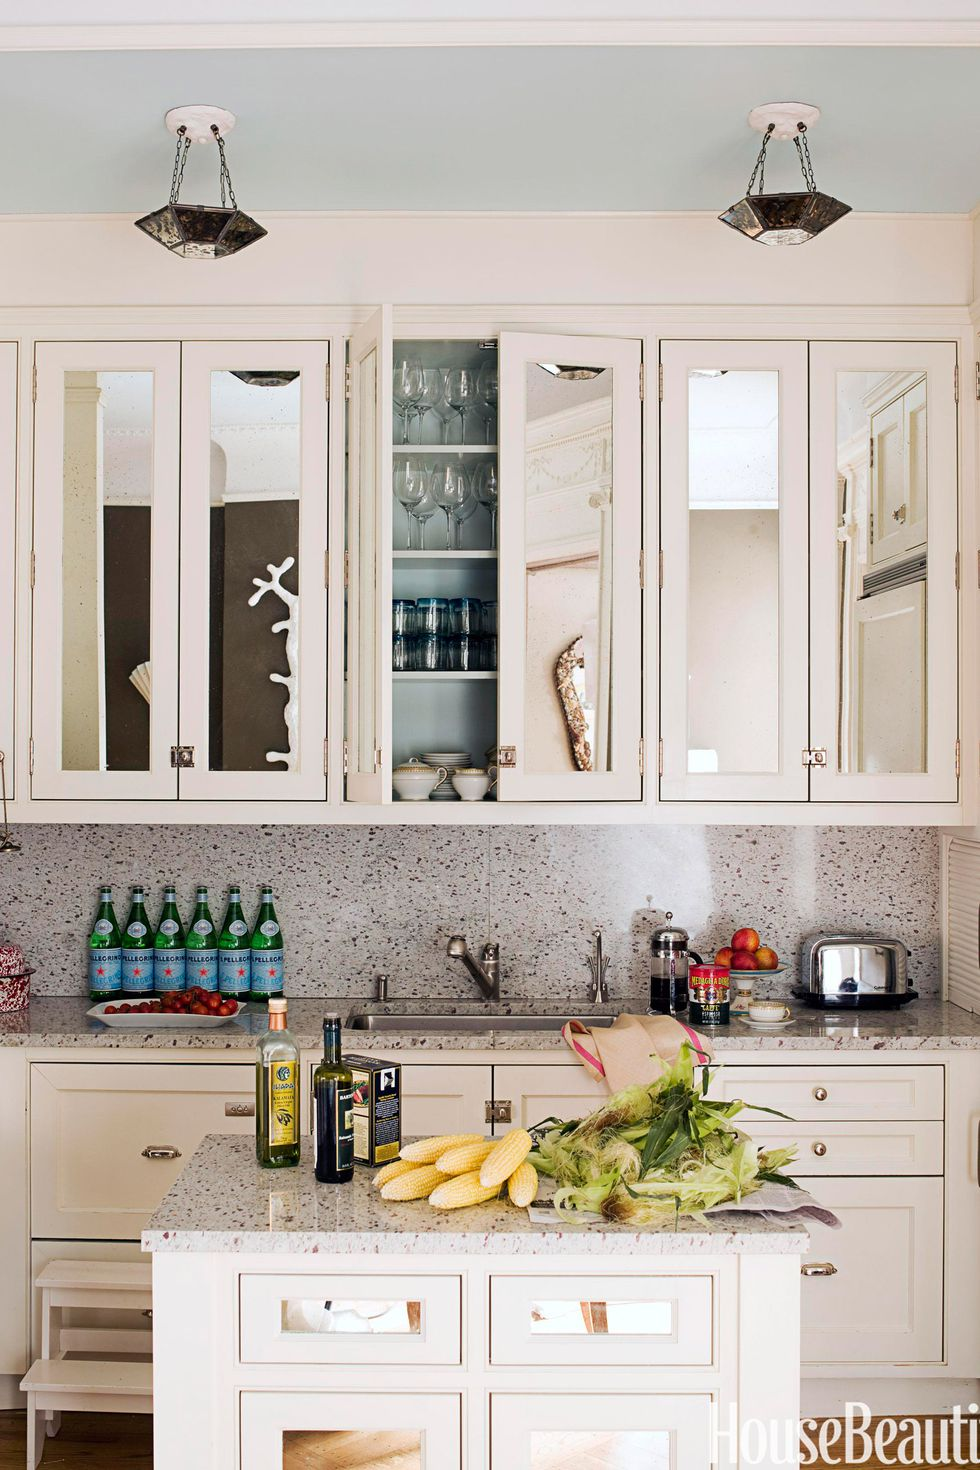 You Can Do A Lot With Just A Little Space. Check Out These Top  Spacing Saving Tricks To Make The Most Of Your Smaller Kitchen. Add Mirrors